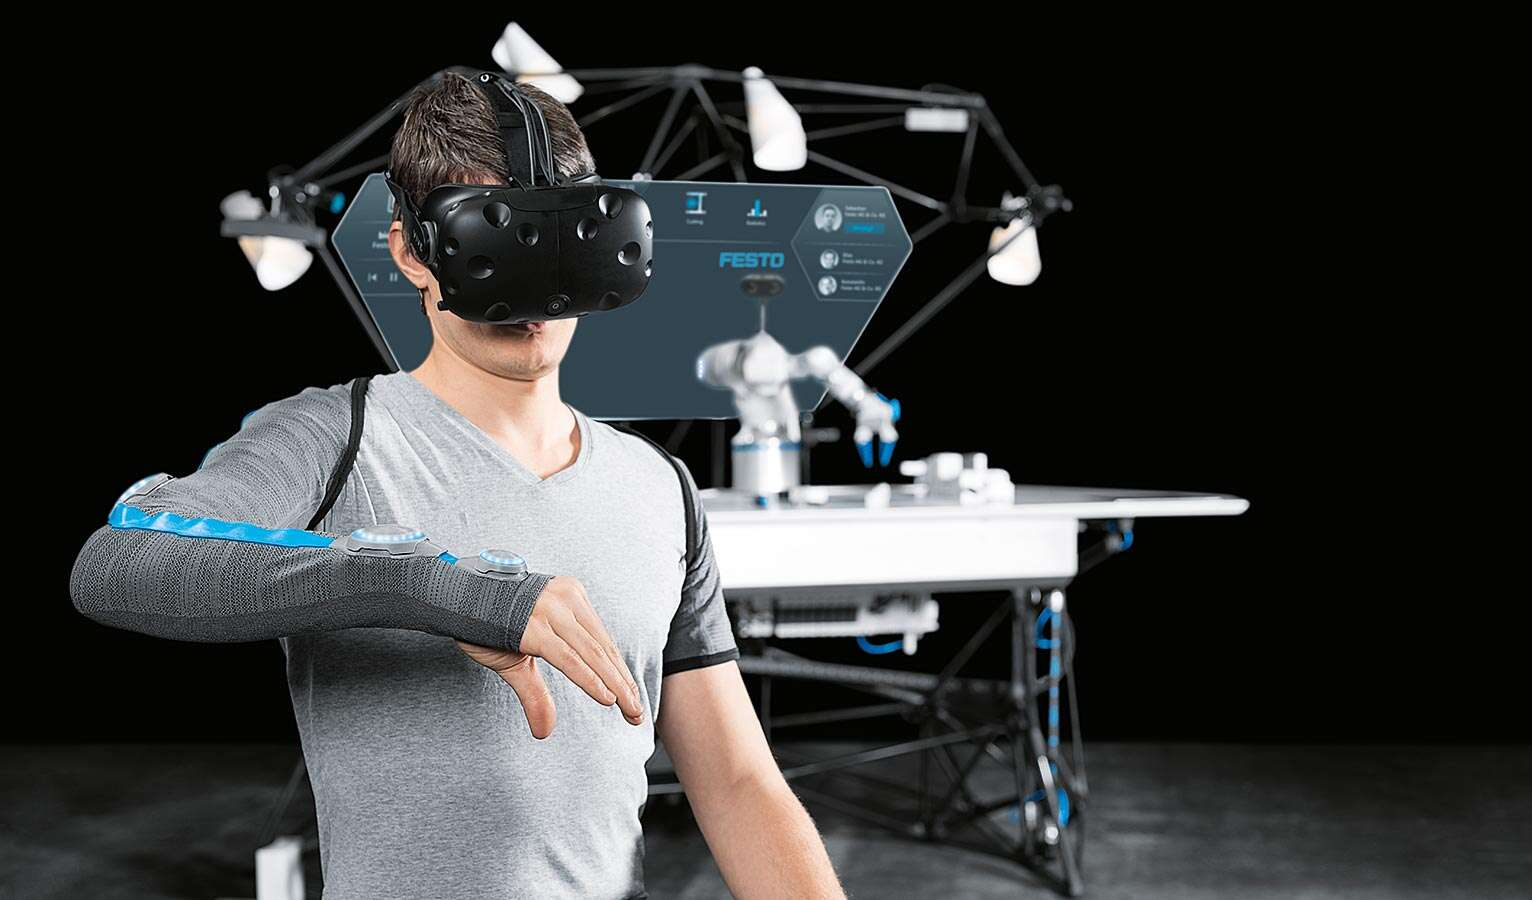 BionicWorkplace | Festo Corporate